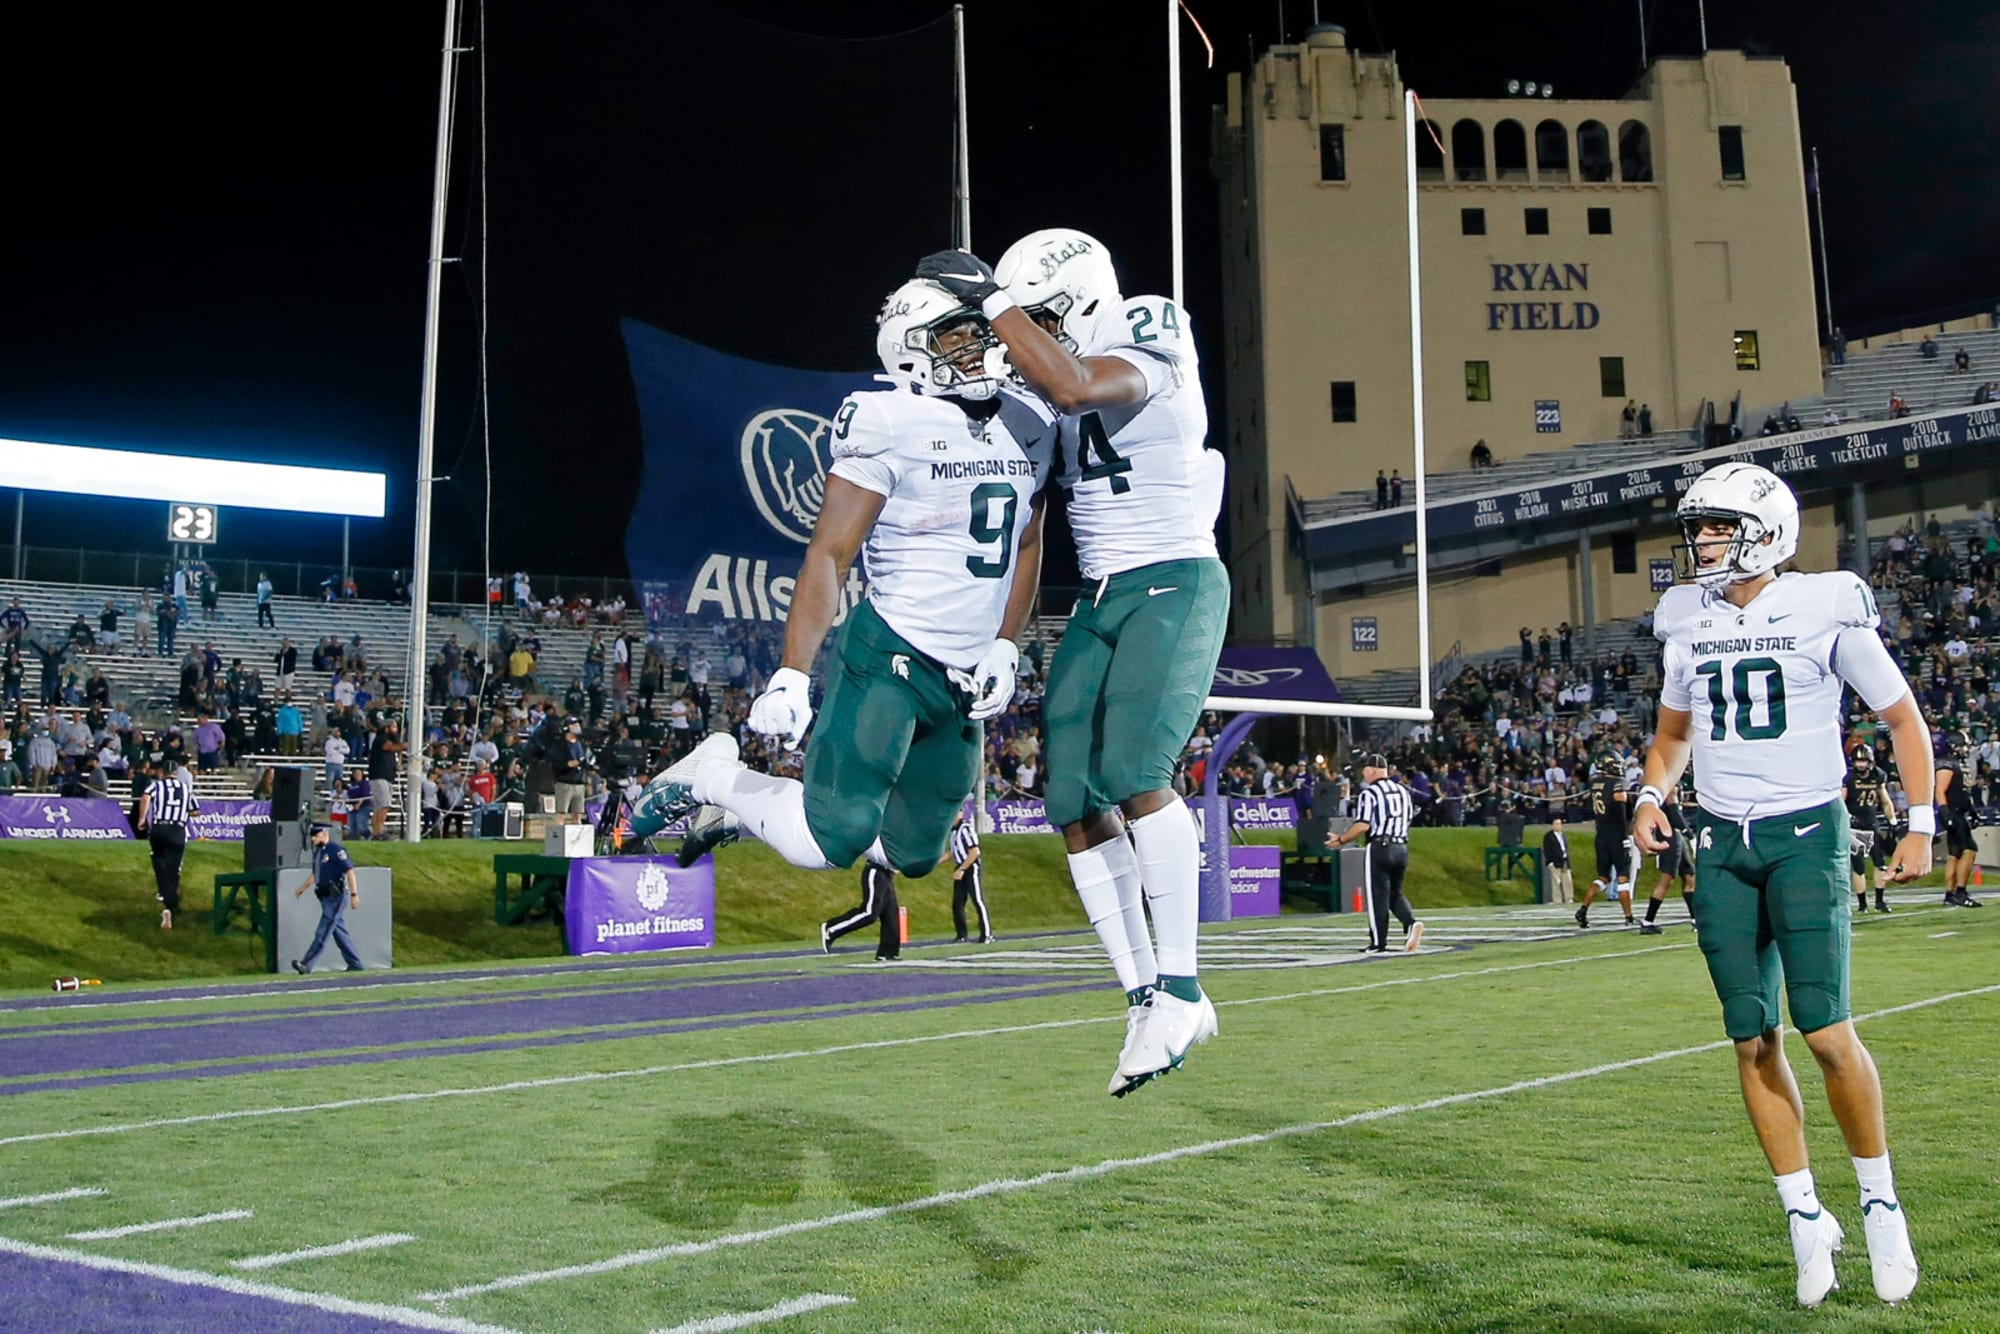 Michigan State football: Where do Spartans sit in Big Ten power rankings?